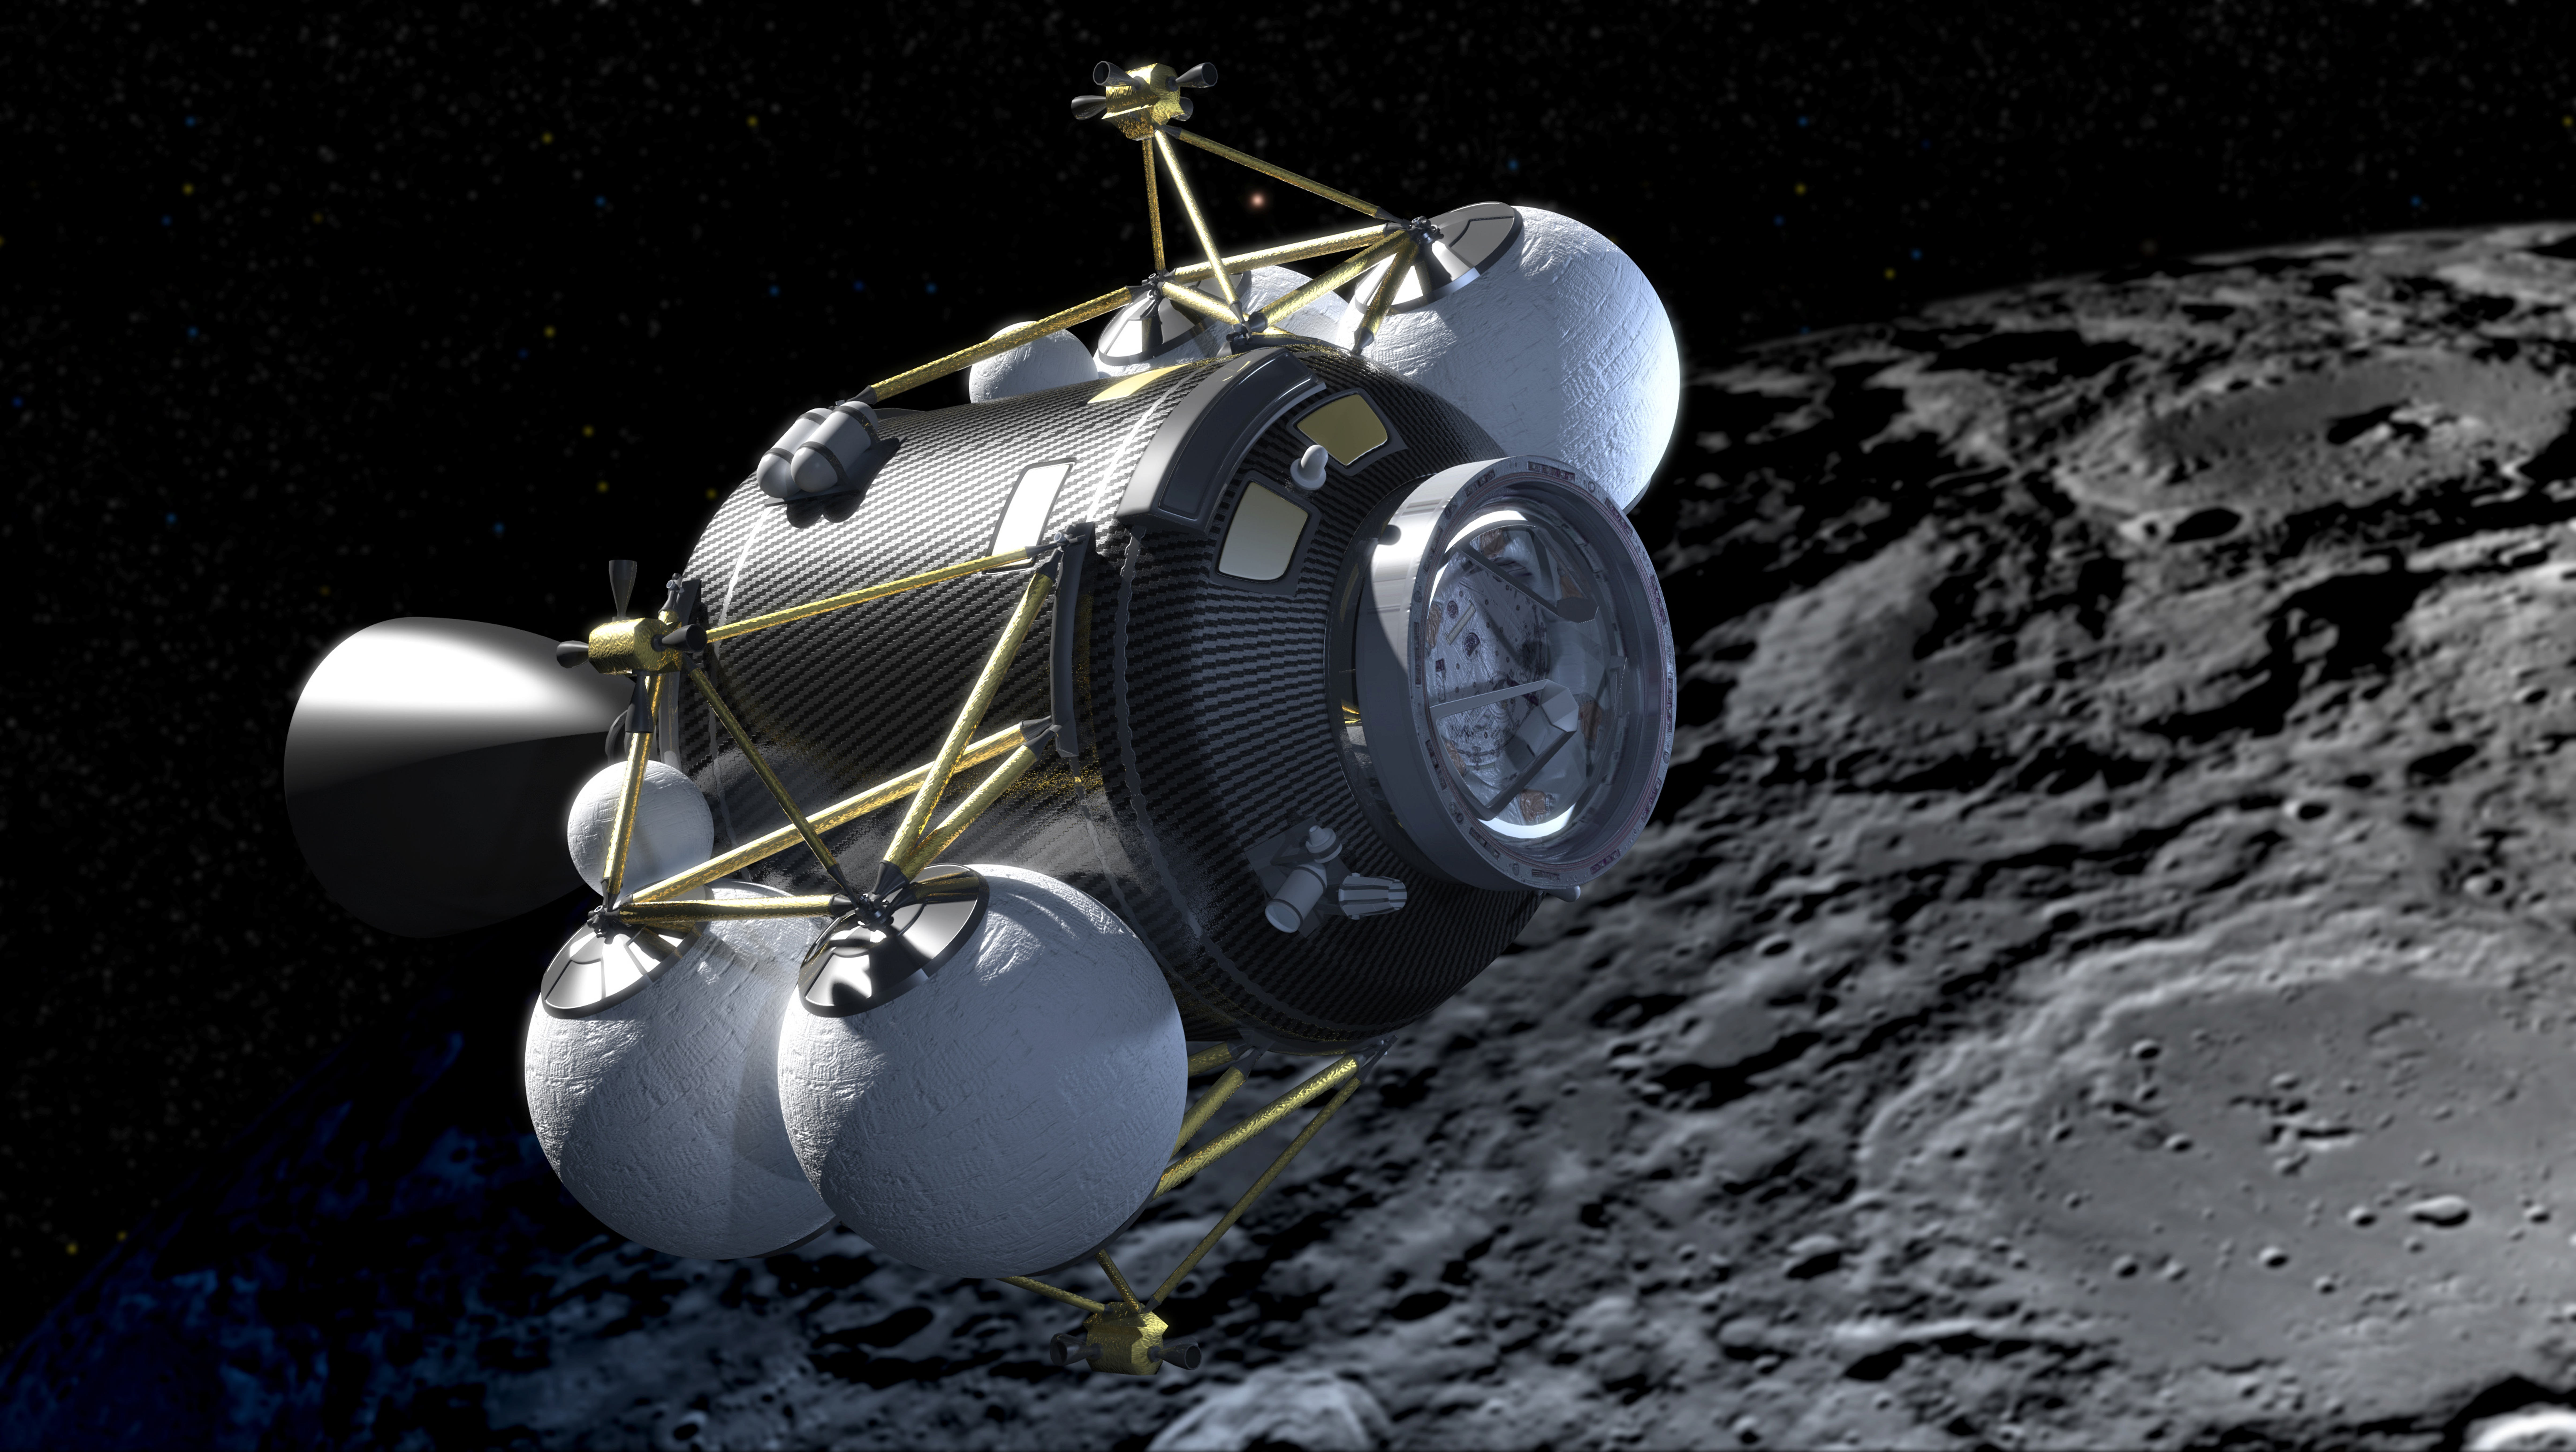 Altair_ascent_stage_orbiting_the_moon.jp